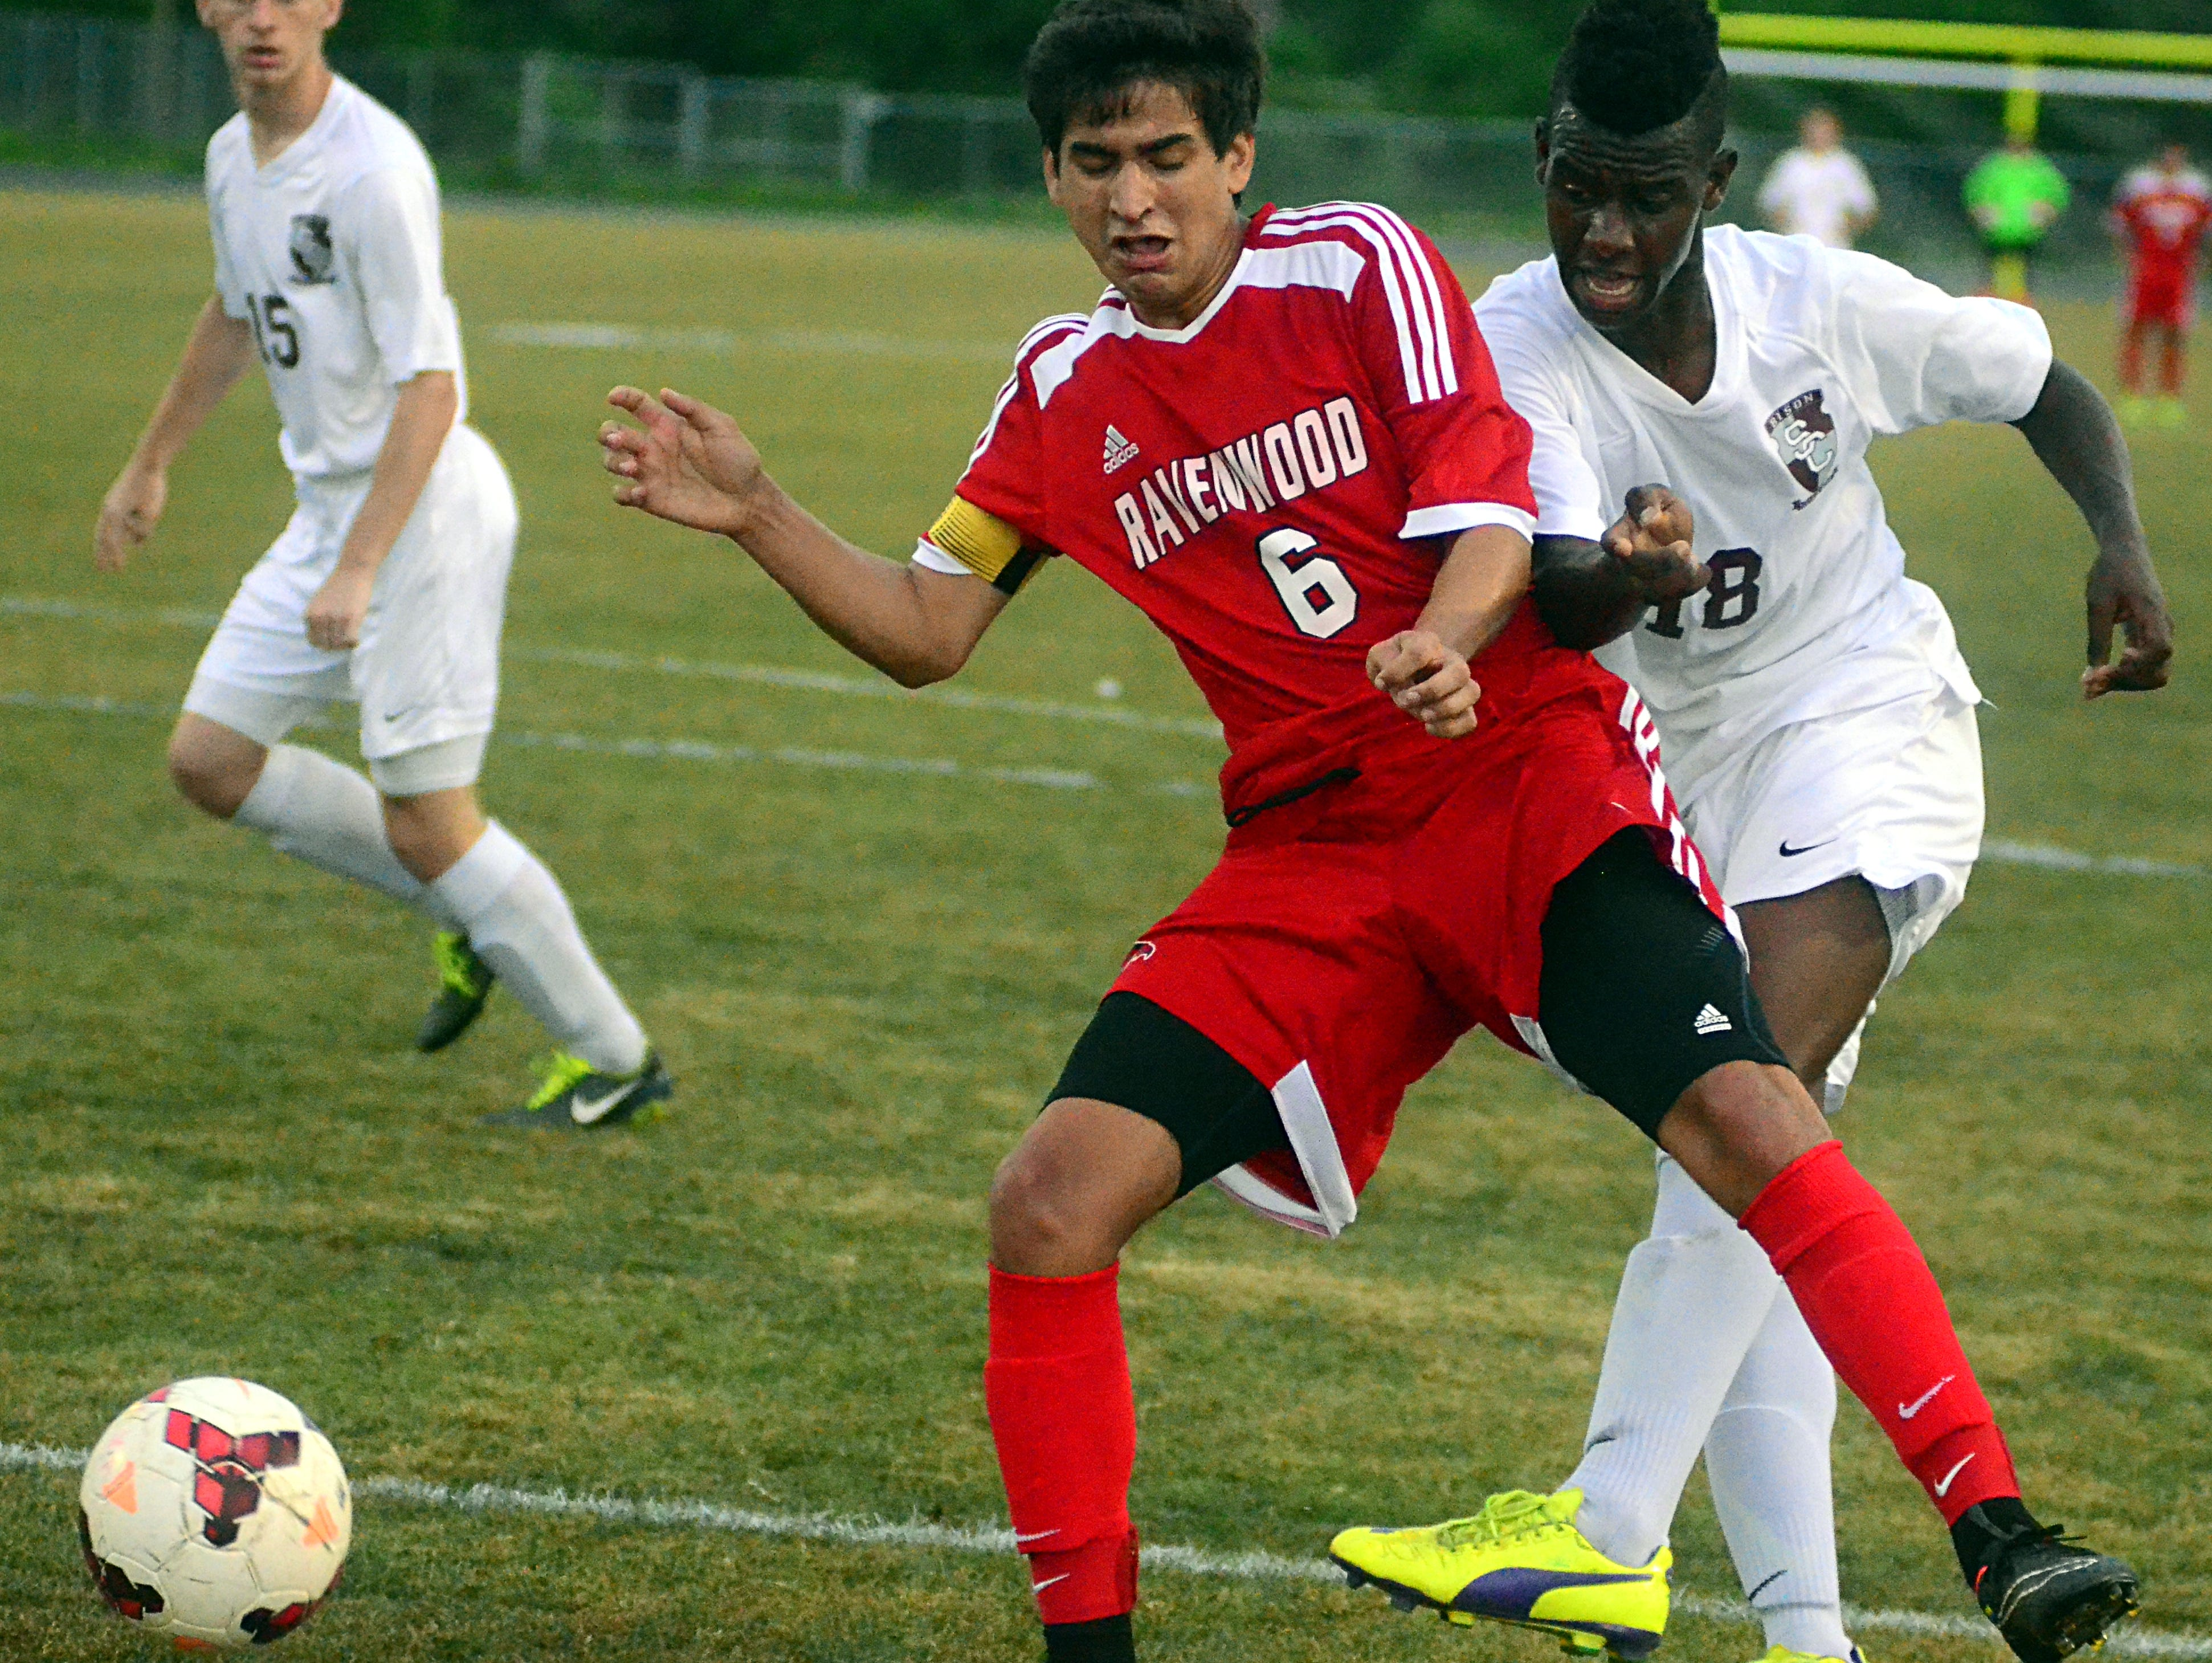 Ravenwood defender Pedro Cobo battles with Station Camp's Atakelti Gebrezgabher for a loose ball during Saturday's AAA sectional. The Raptors will be competing in this week's state tournament in Murfreesboro.